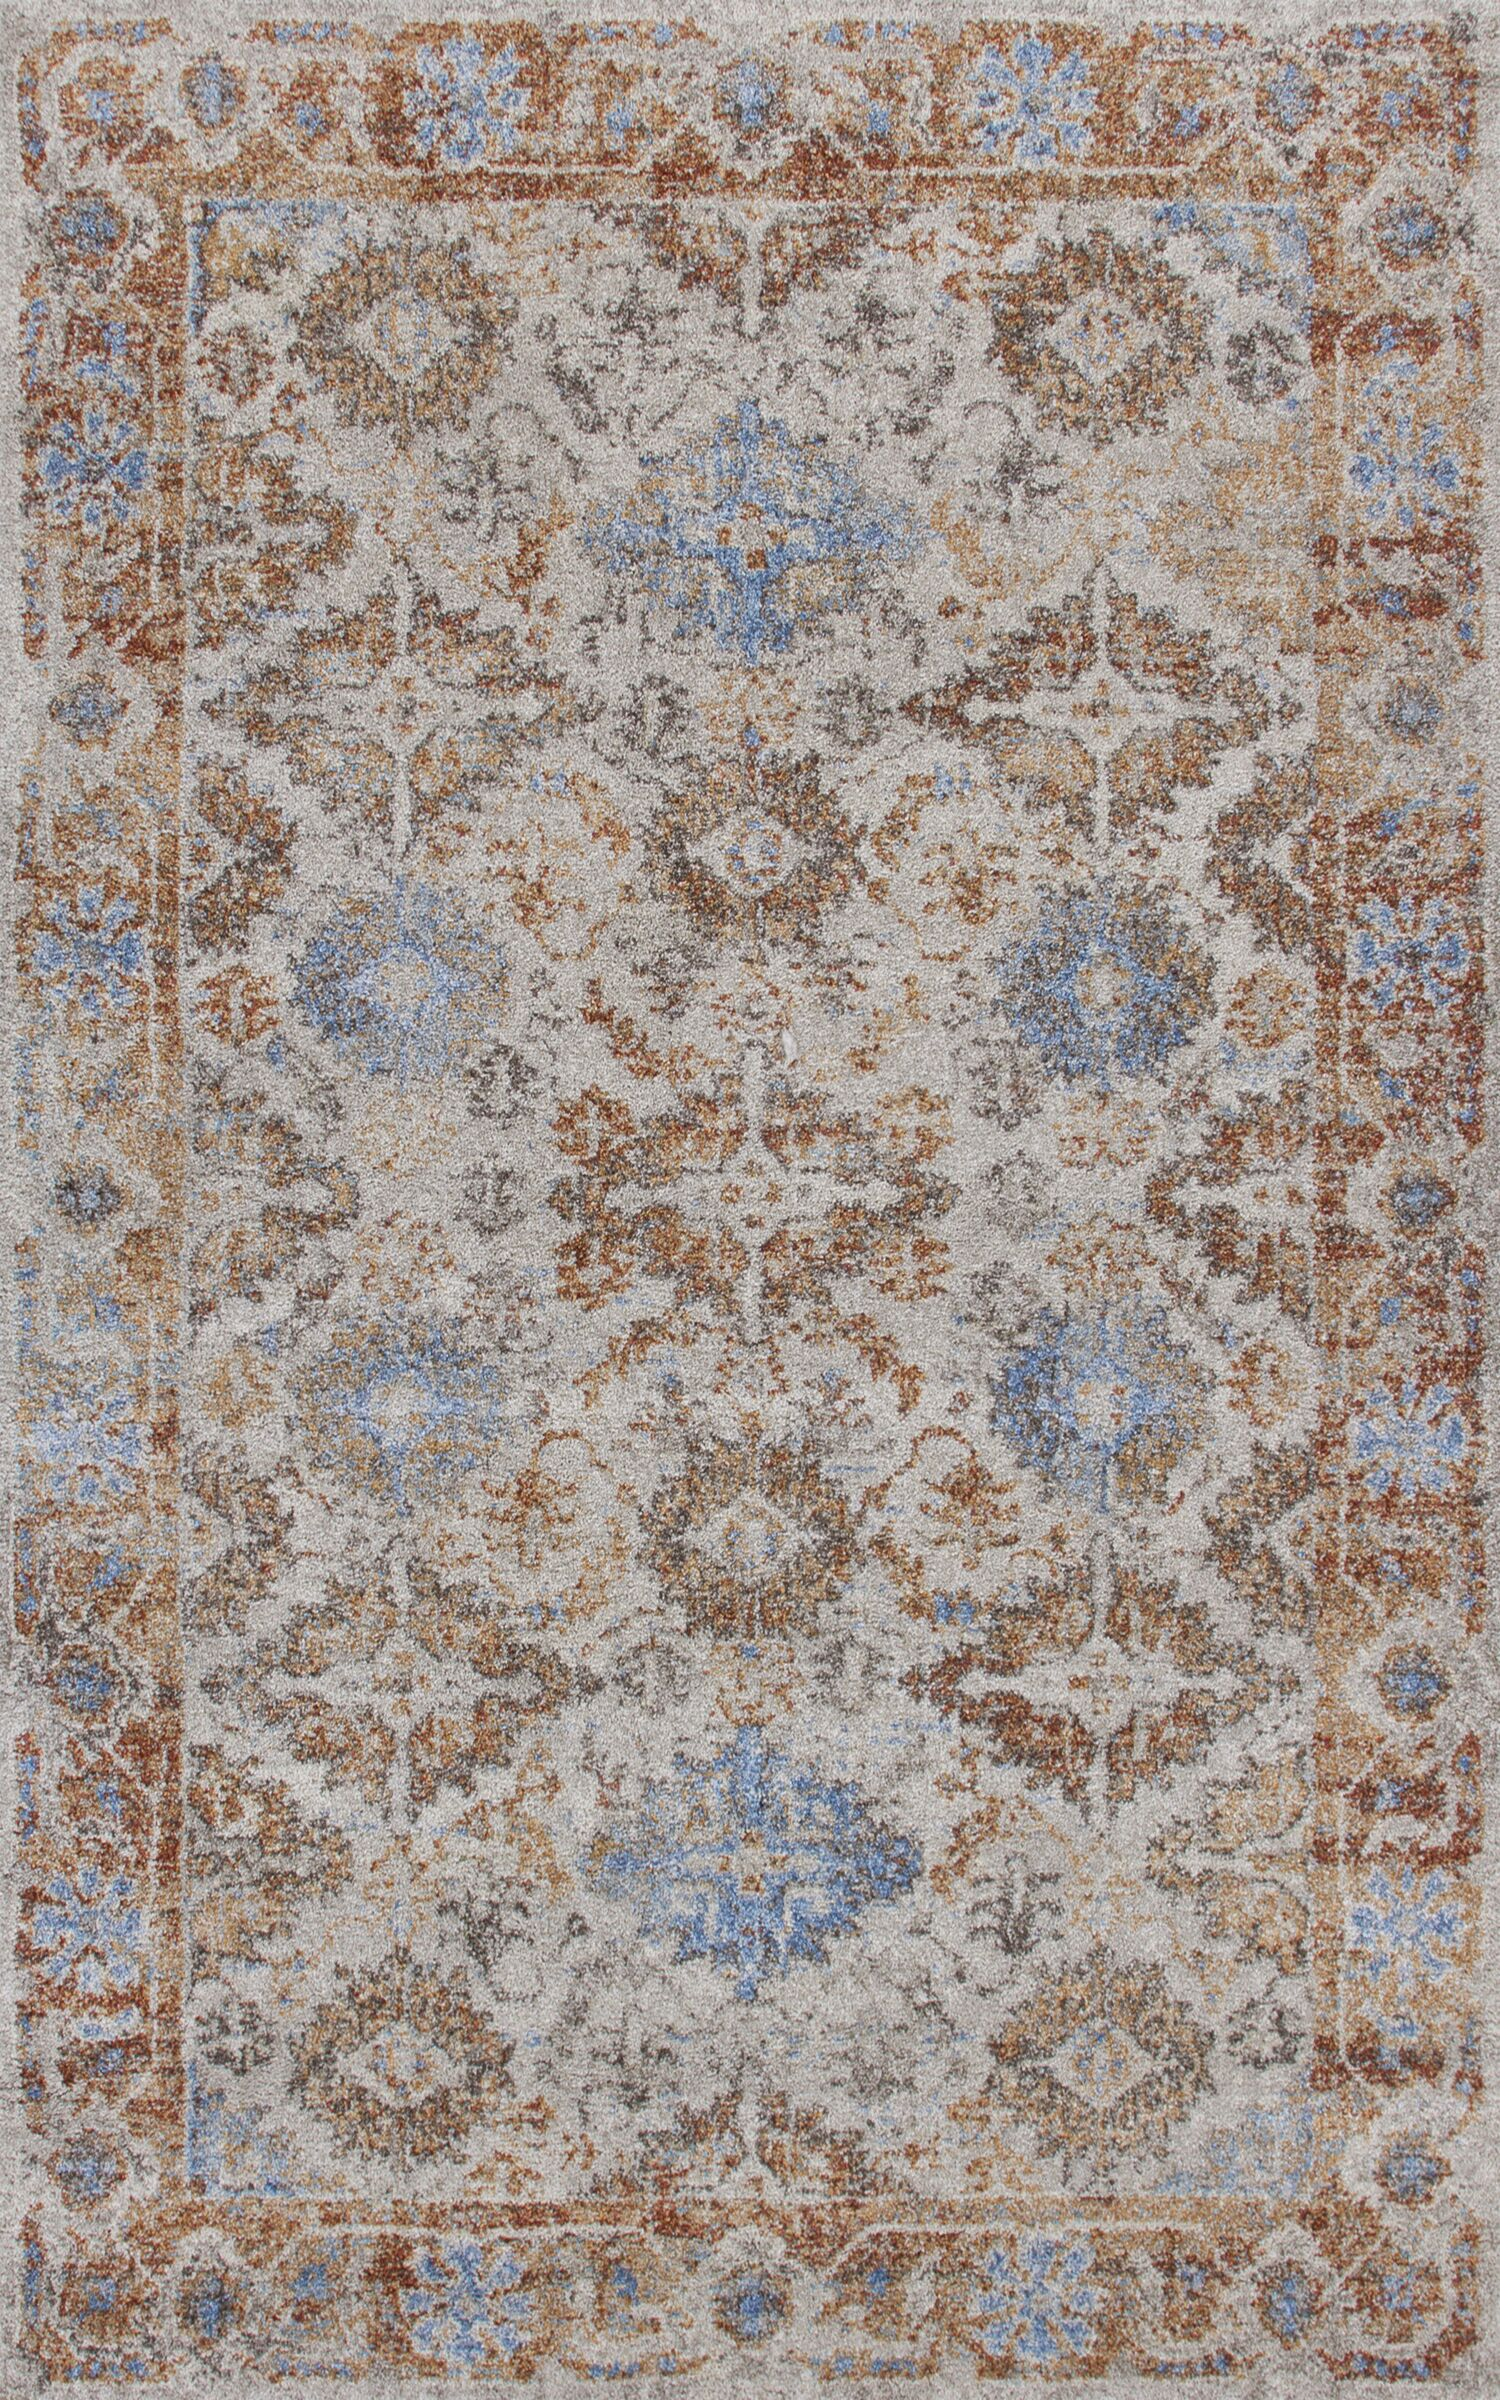 Talbotton Putty Orange/Brown/Blue Area Rug Rug Size: Rectangle 7'10